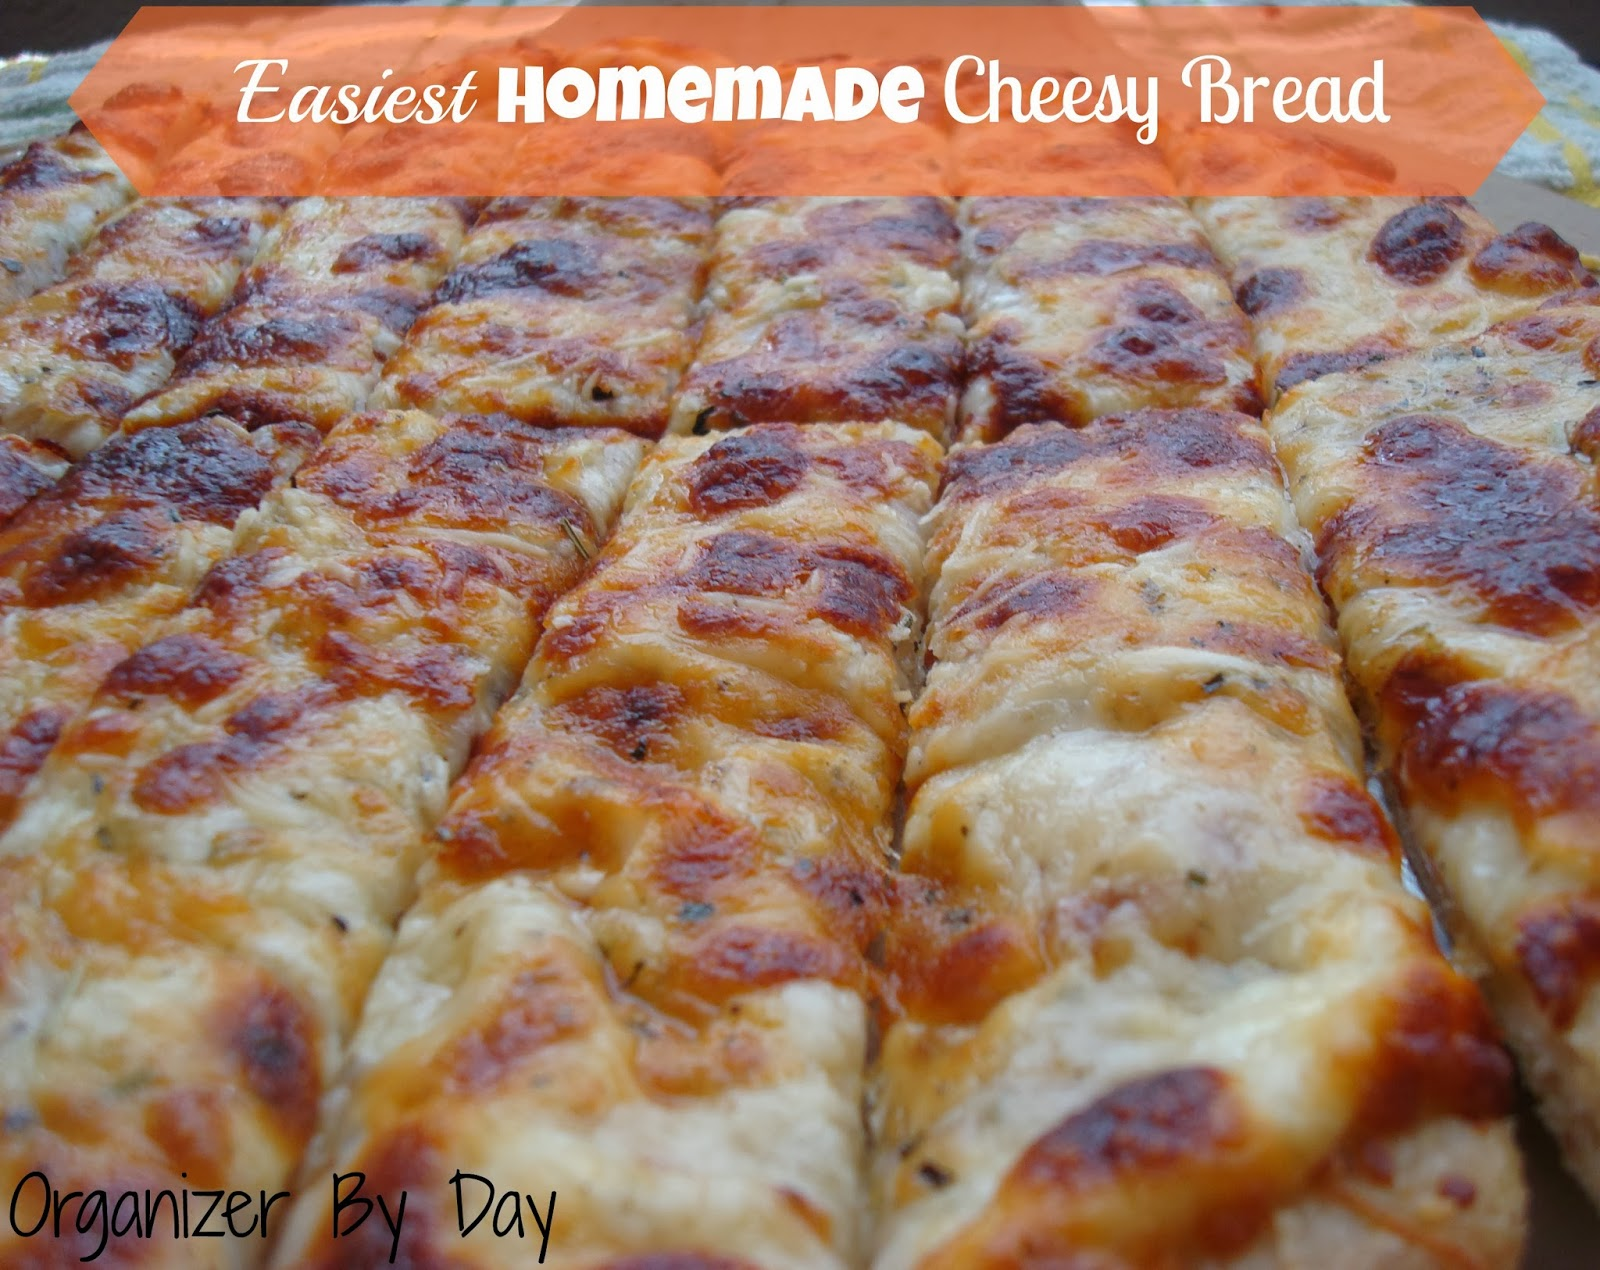 Homemade Cheesy Bread